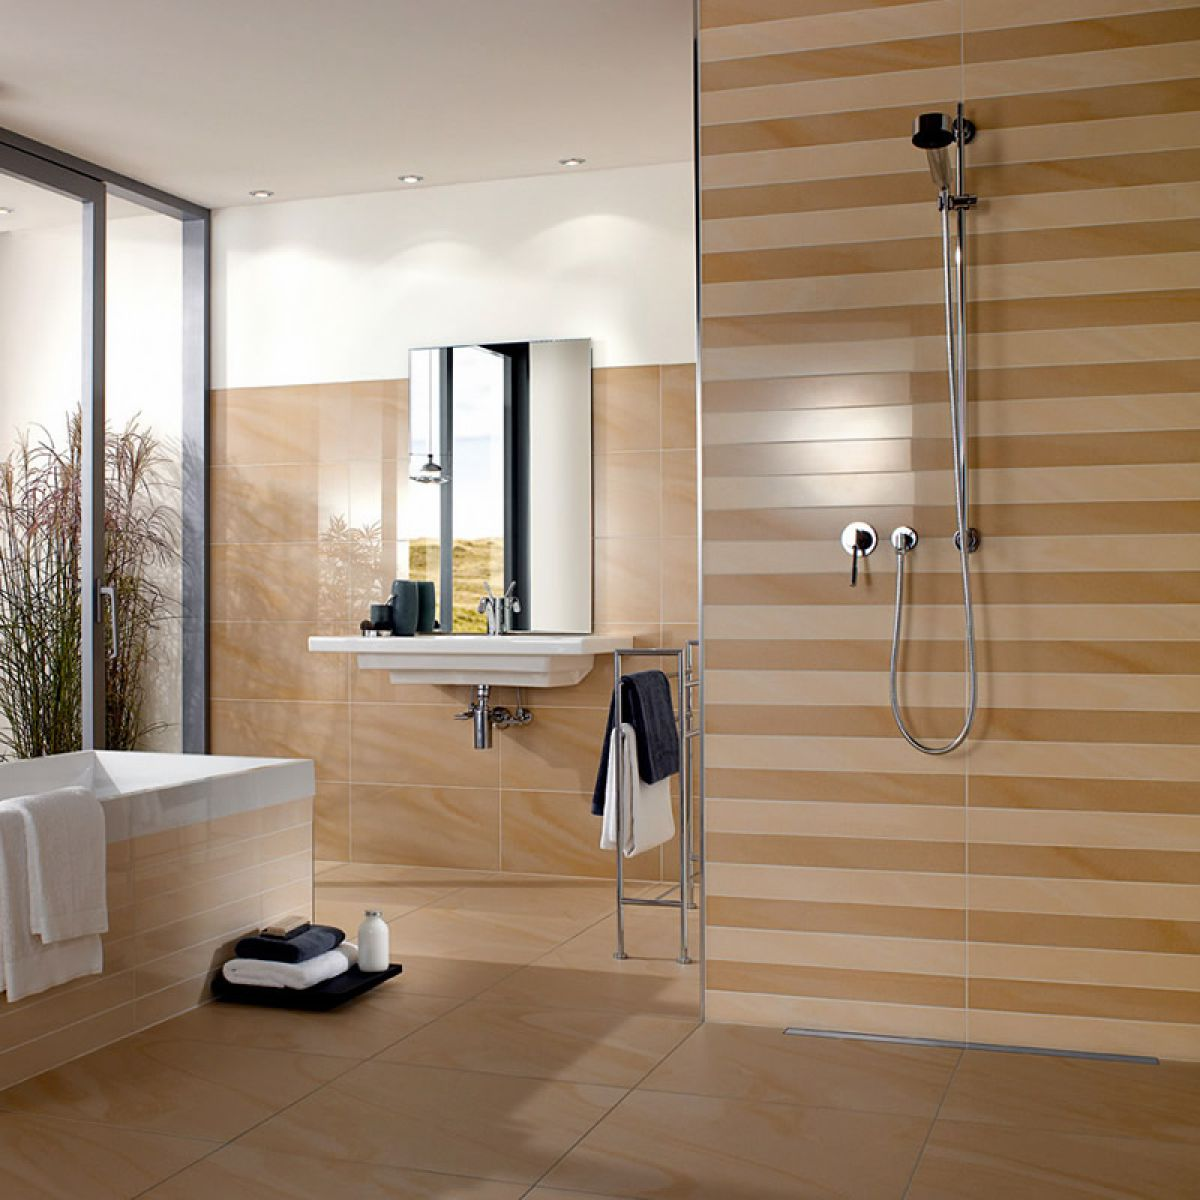 villeroy and boch bathroom tiles villeroy amp boch landscape border tile 2861 5 x 60cm uk 24494